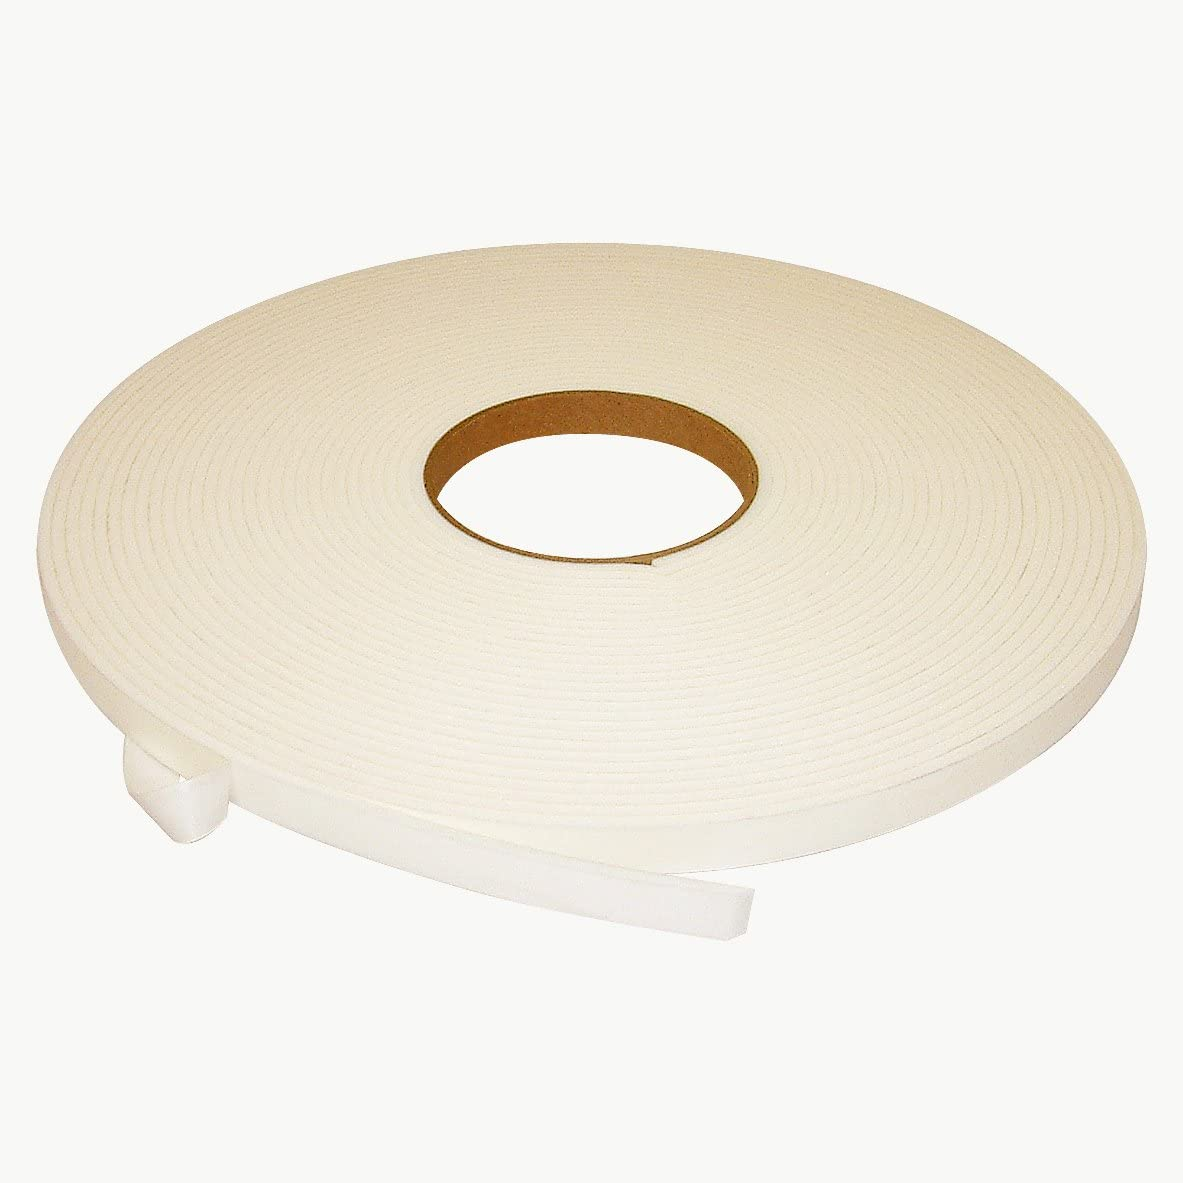 JVCC DC-PEF12A Max 72% OFF Polyethylene Foam Double-Sided Max 81% OFF Closed Tape Cell